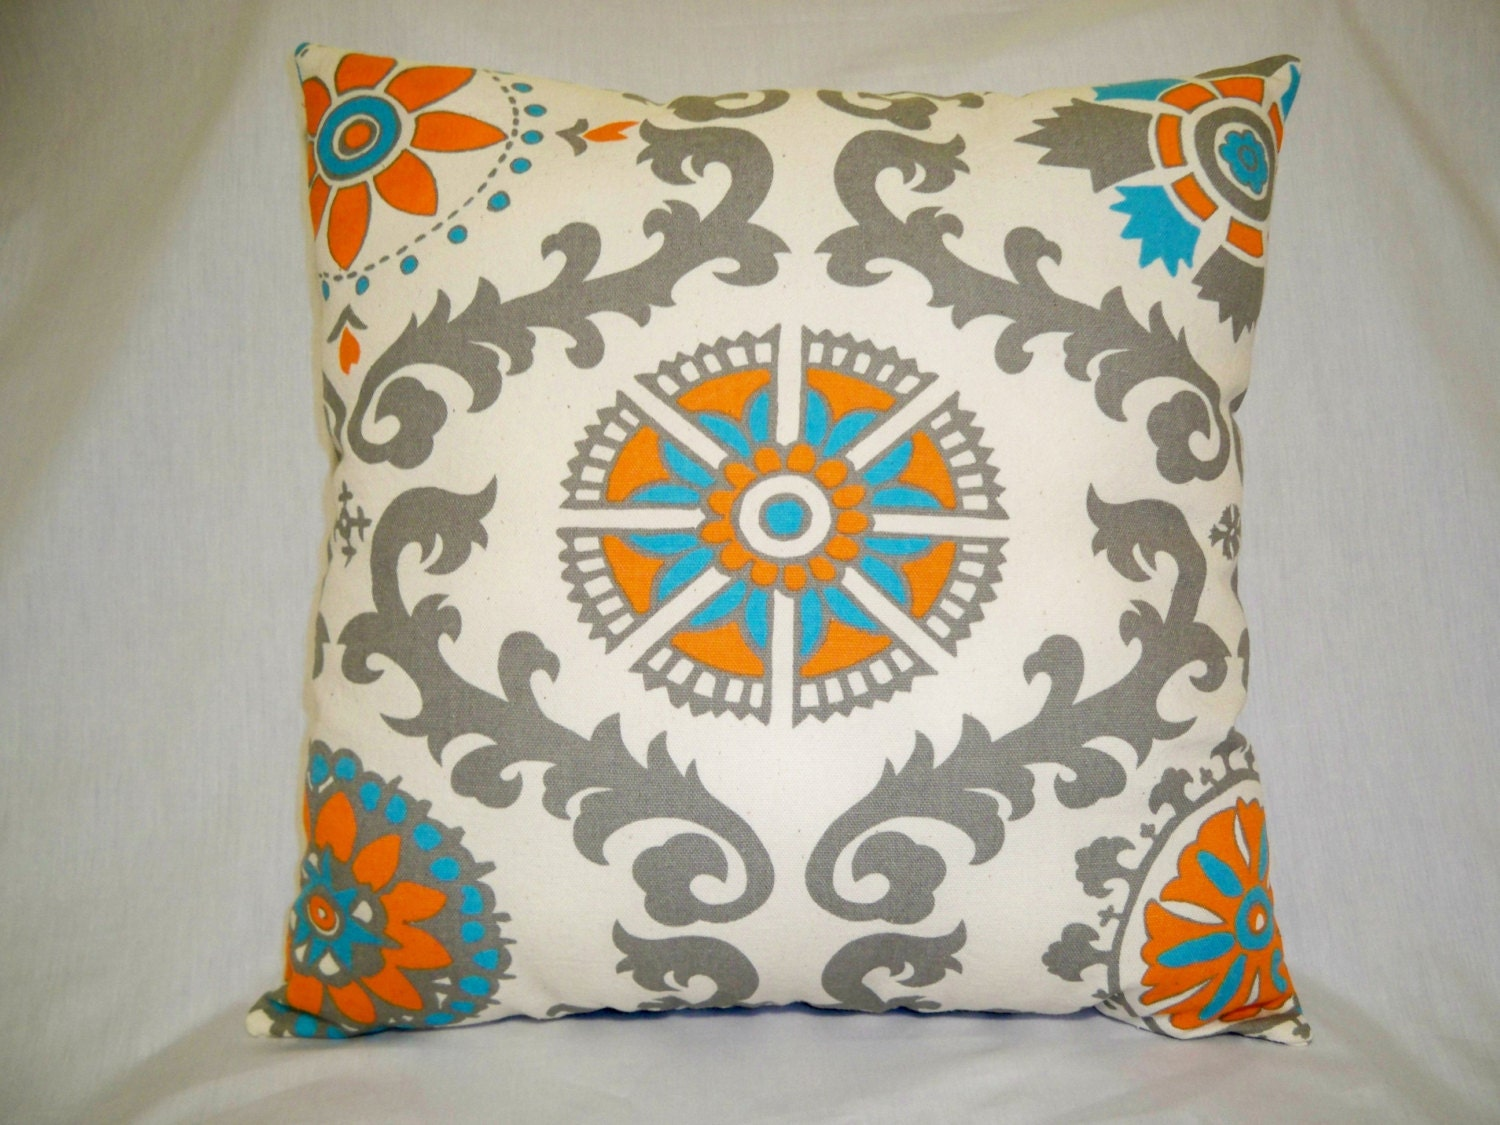 decorative pillow gray pillow orange pillow cream pillow. Black Bedroom Furniture Sets. Home Design Ideas